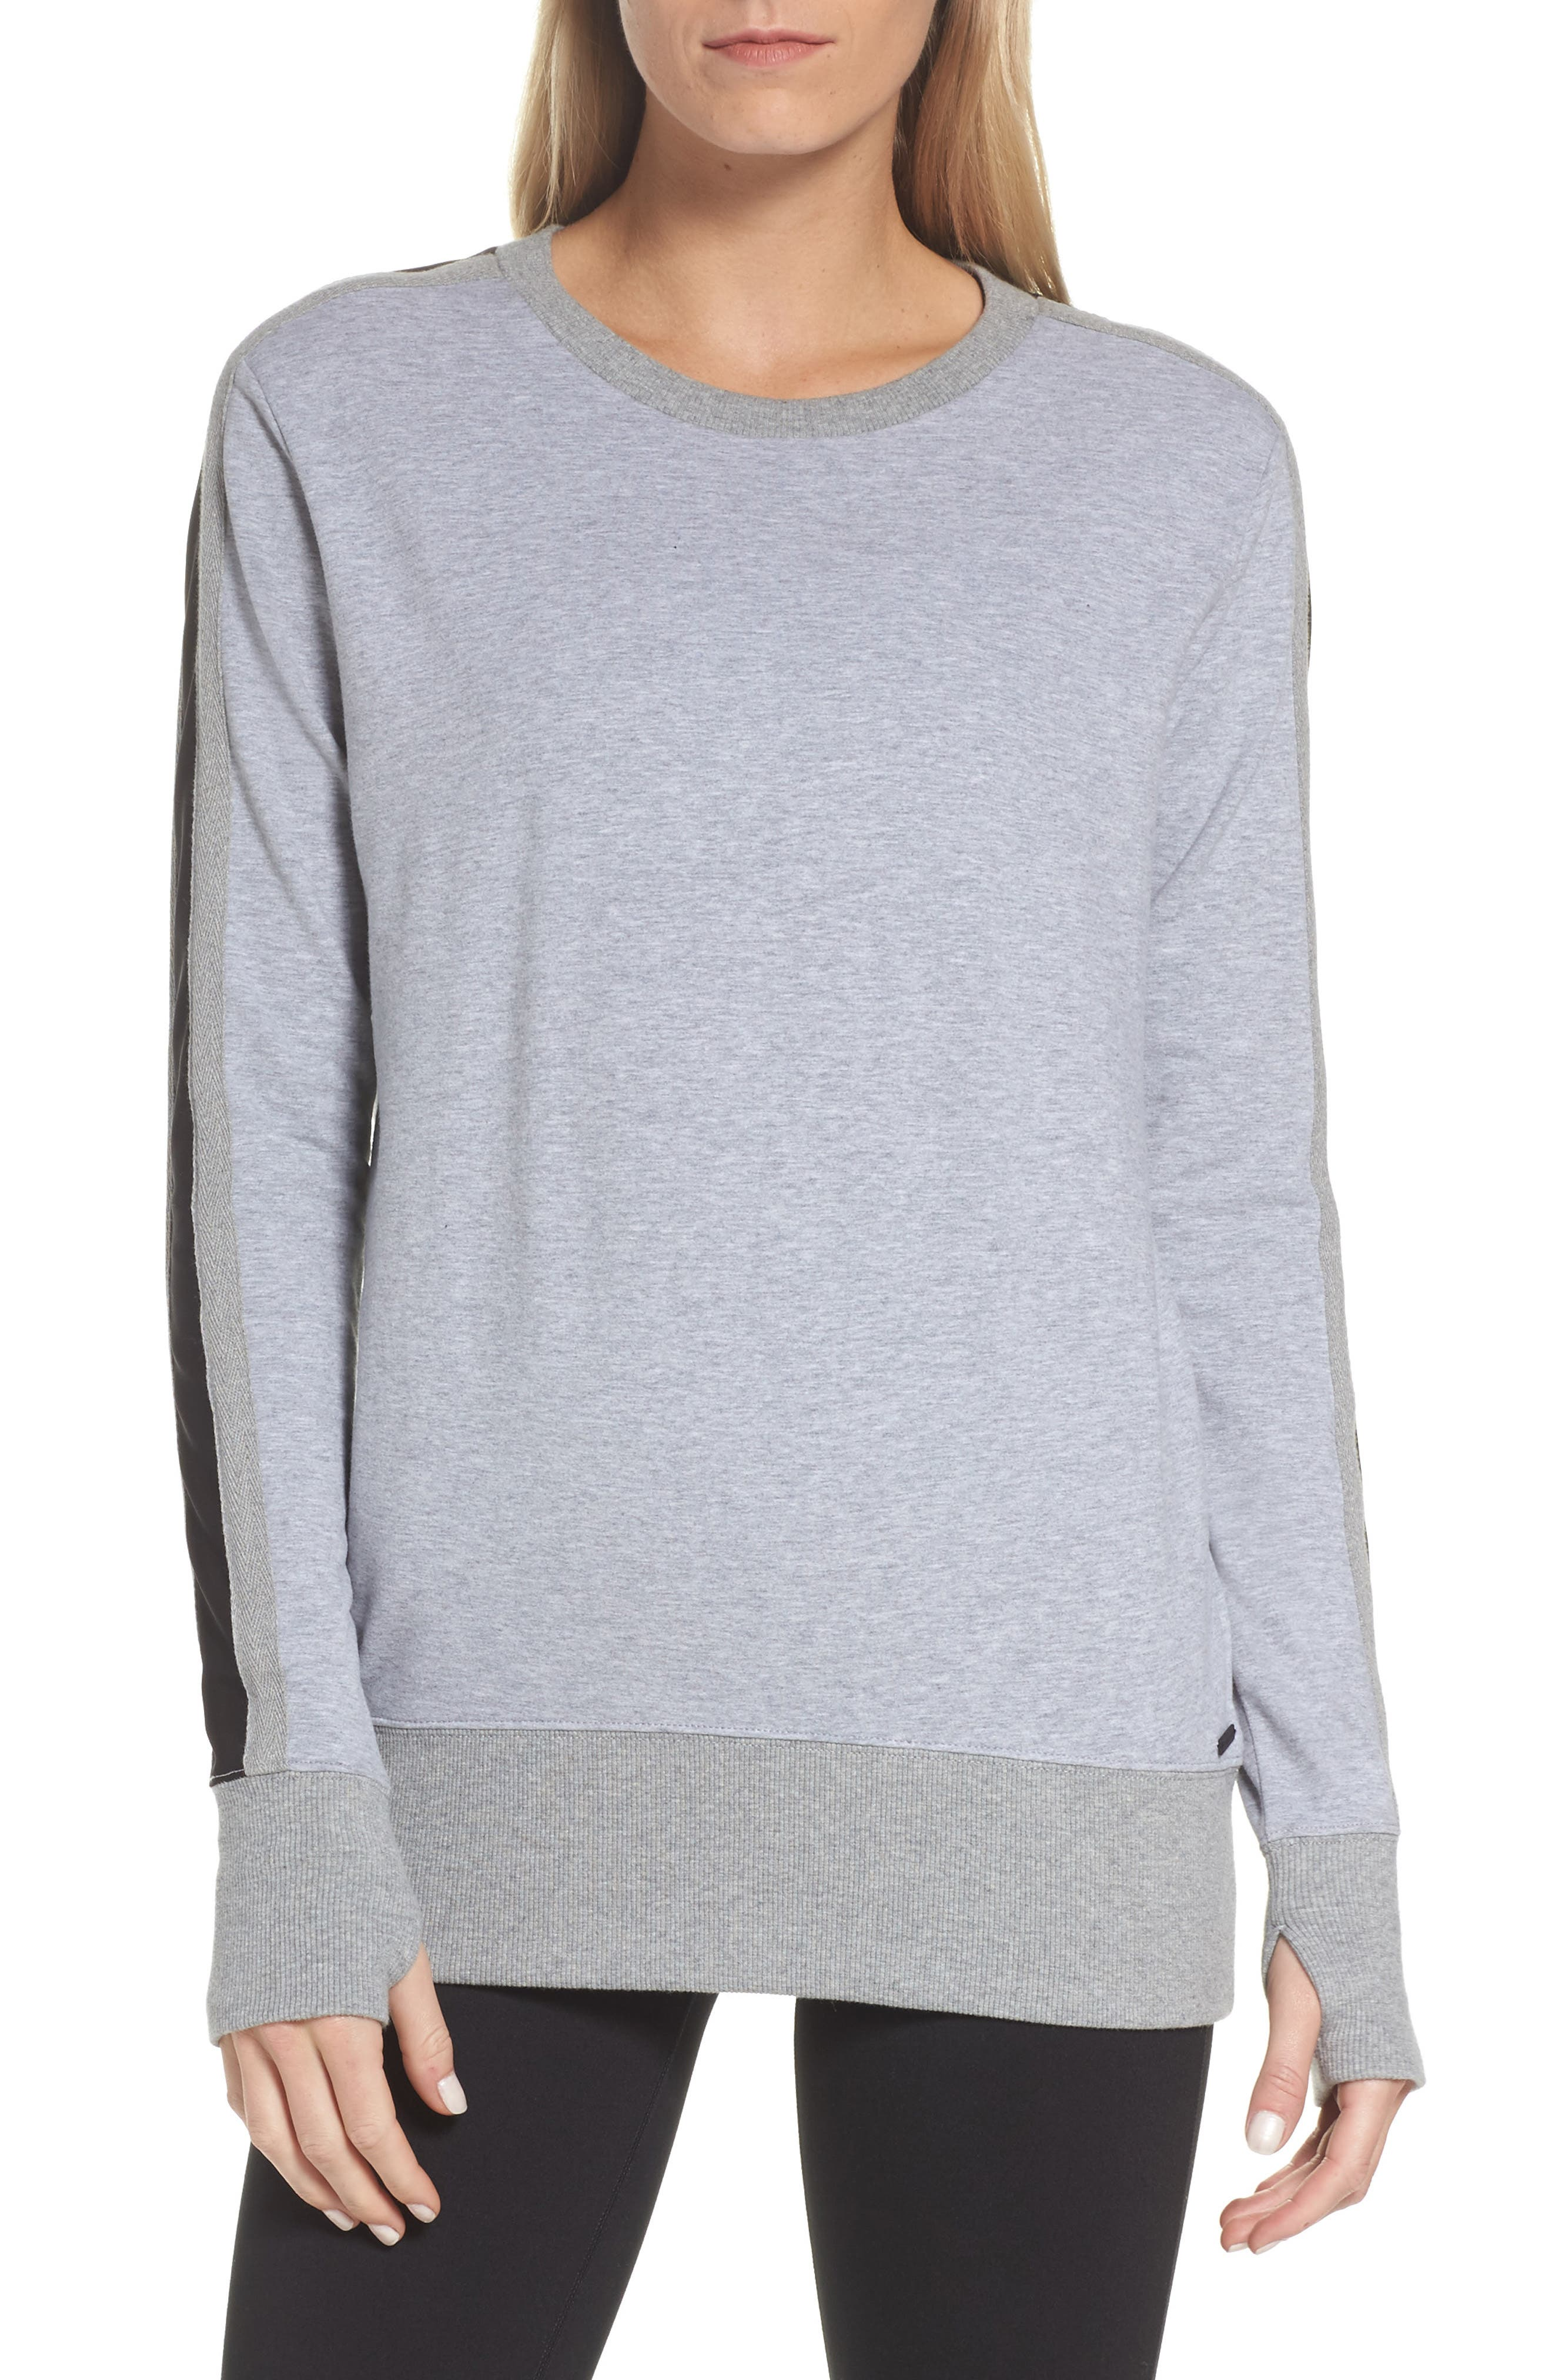 Social Sweatshirt,                             Main thumbnail 1, color,                             Heather Grey